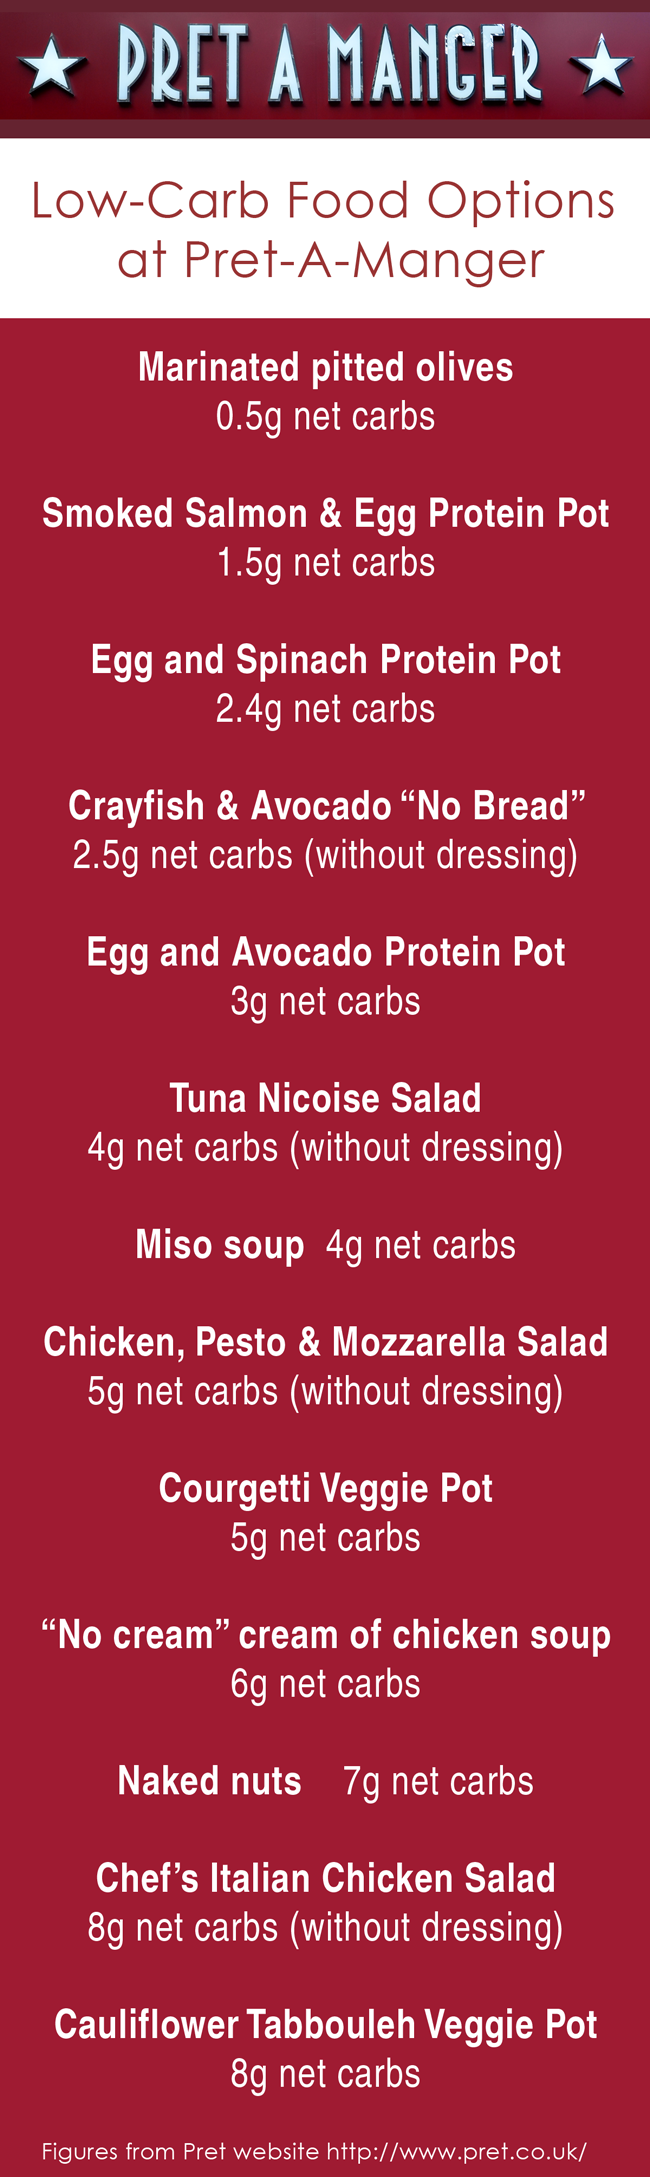 Low-Carb Food Options at Pret-A-Manger - UK